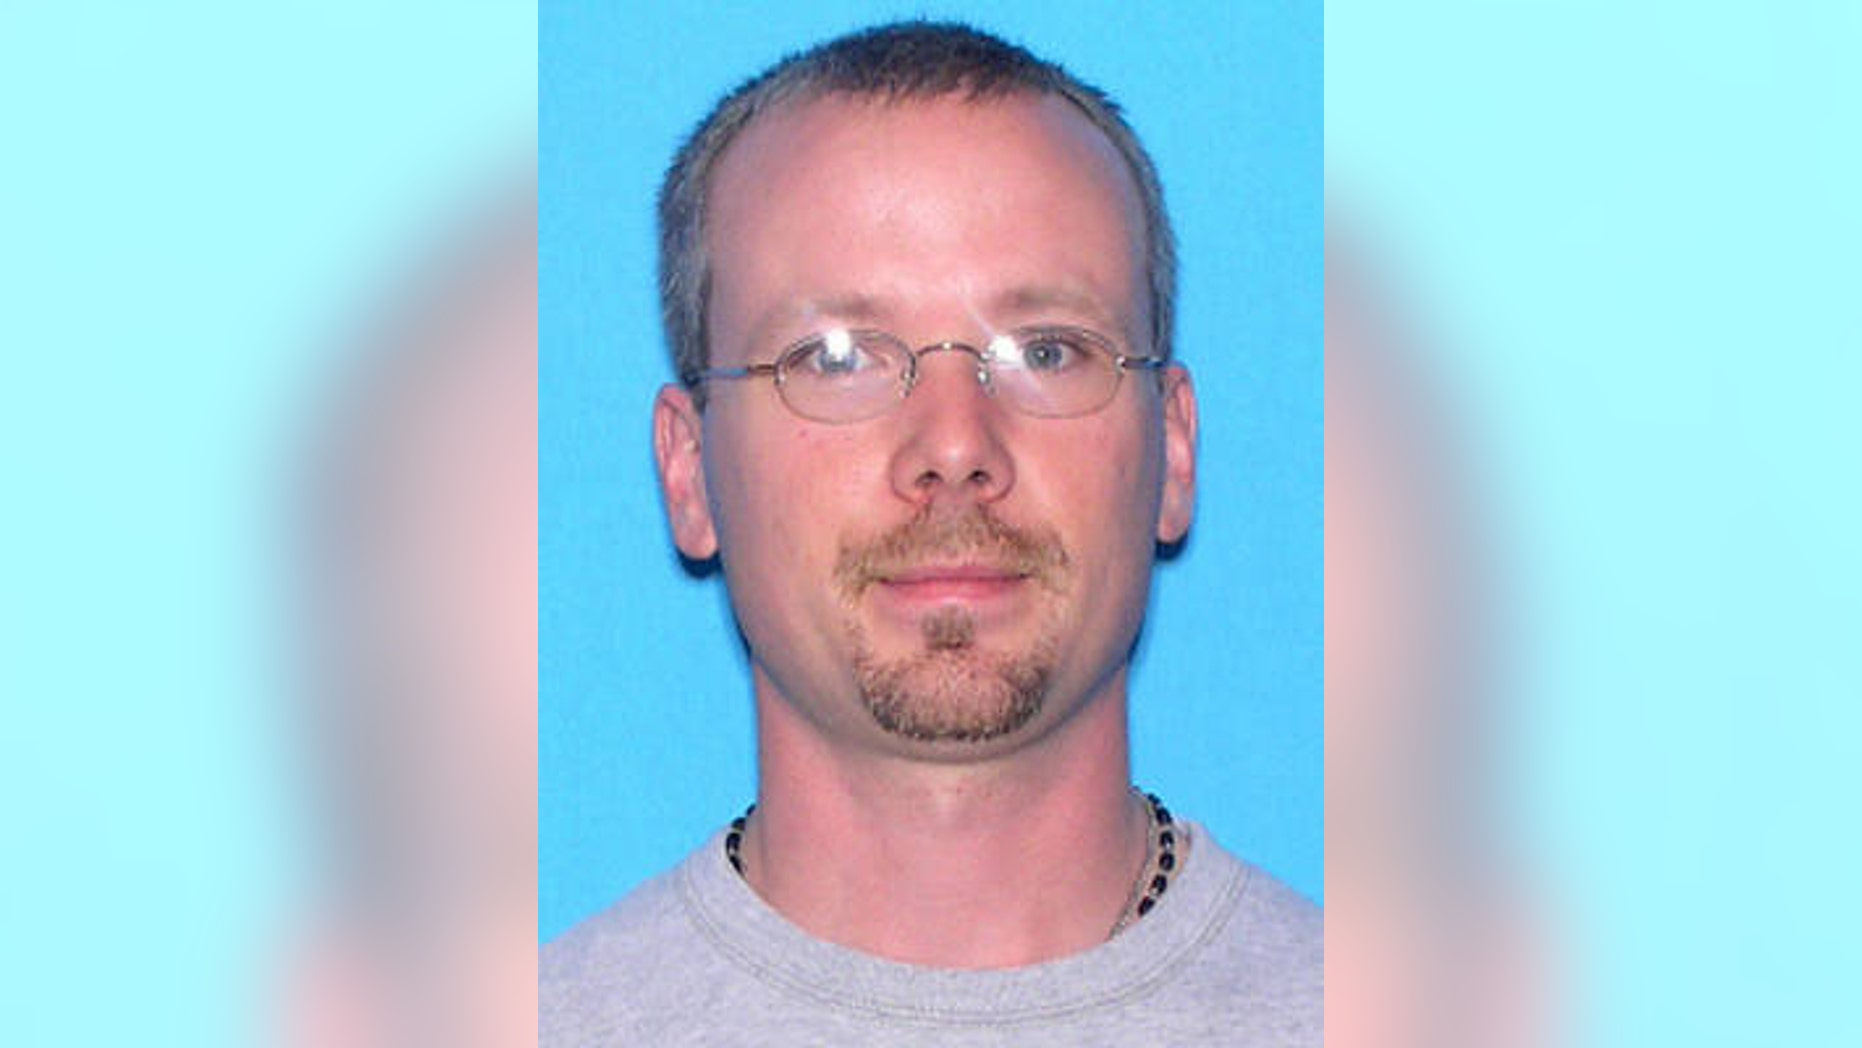 Michael Shaver, 36, who vanished in 2015 has been reported missing nearly three years later.